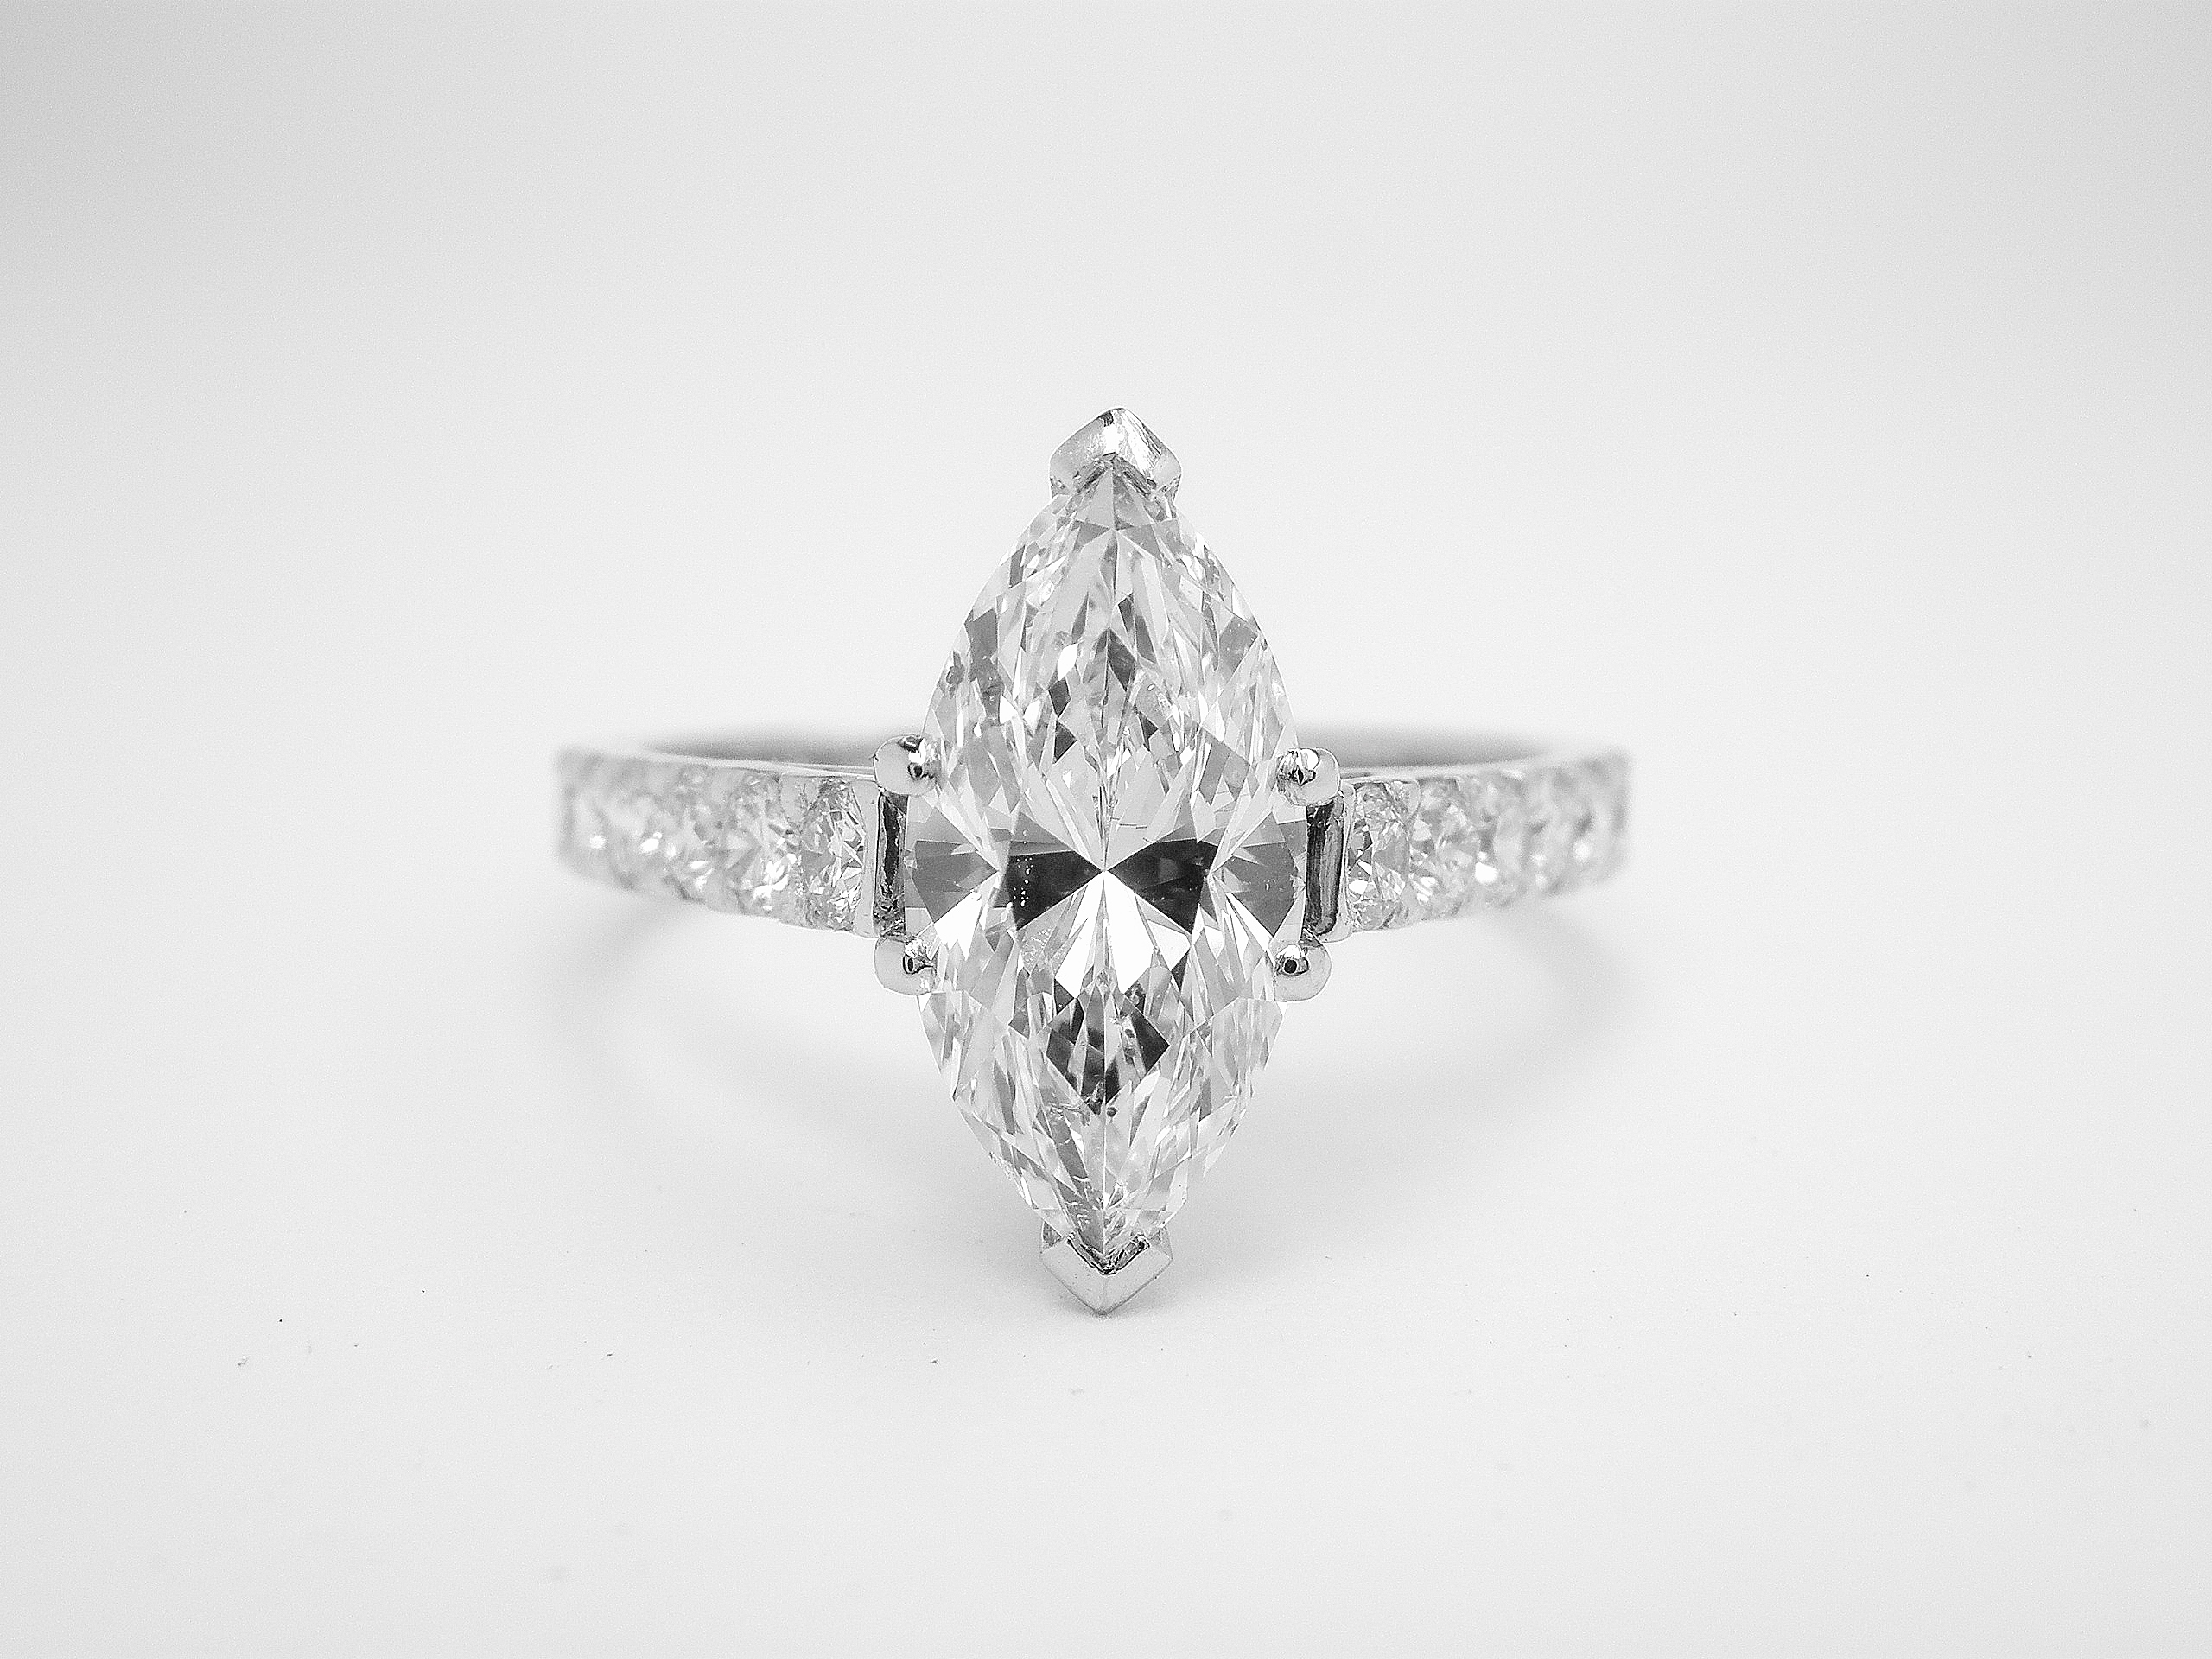 Platinum single stone 1.51ct. 'D' colour Marquise diamond ring with round brilliant cut diamonds cut down set in shoulders.